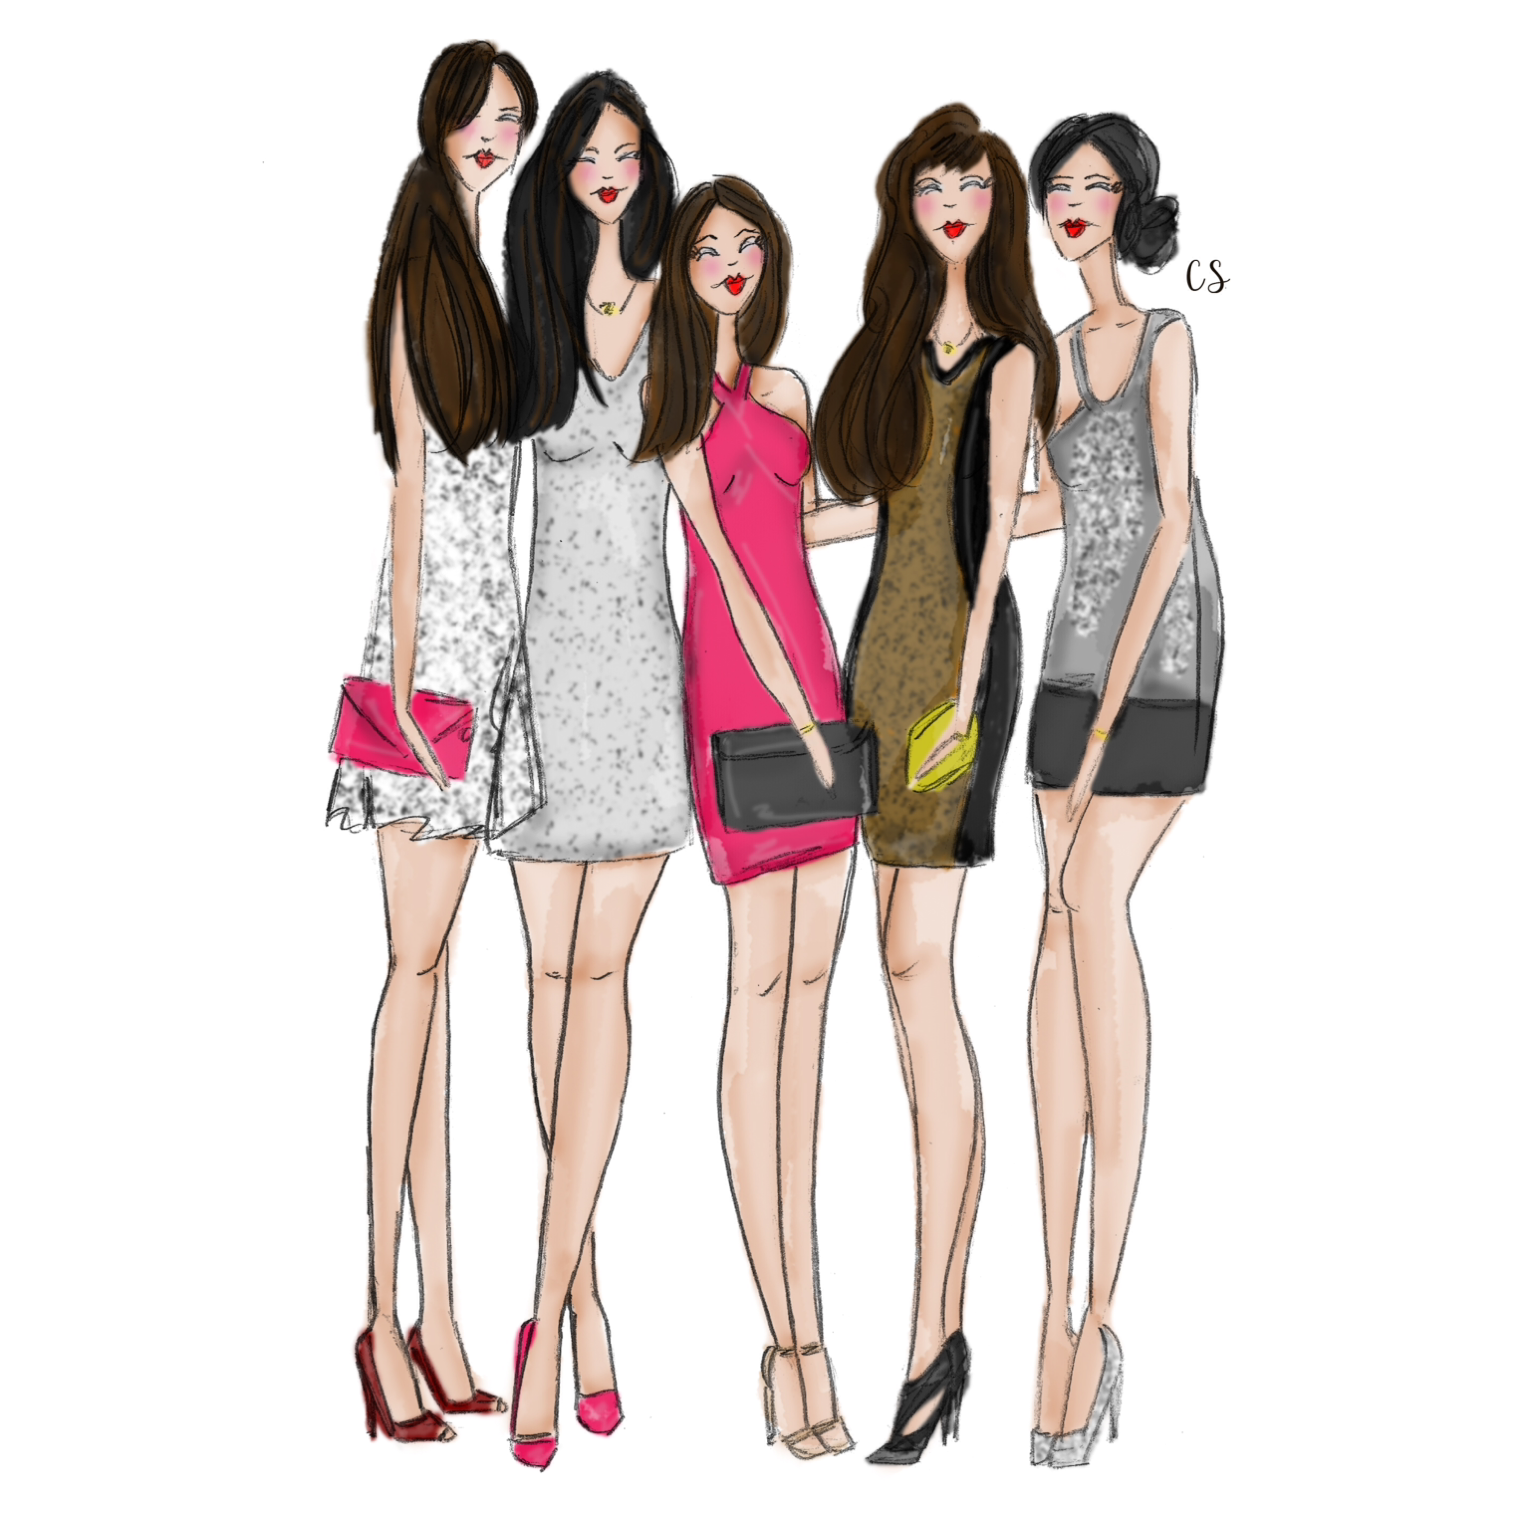 An illustration of my girlfriends and I by  Candace Skaggs Illustration .